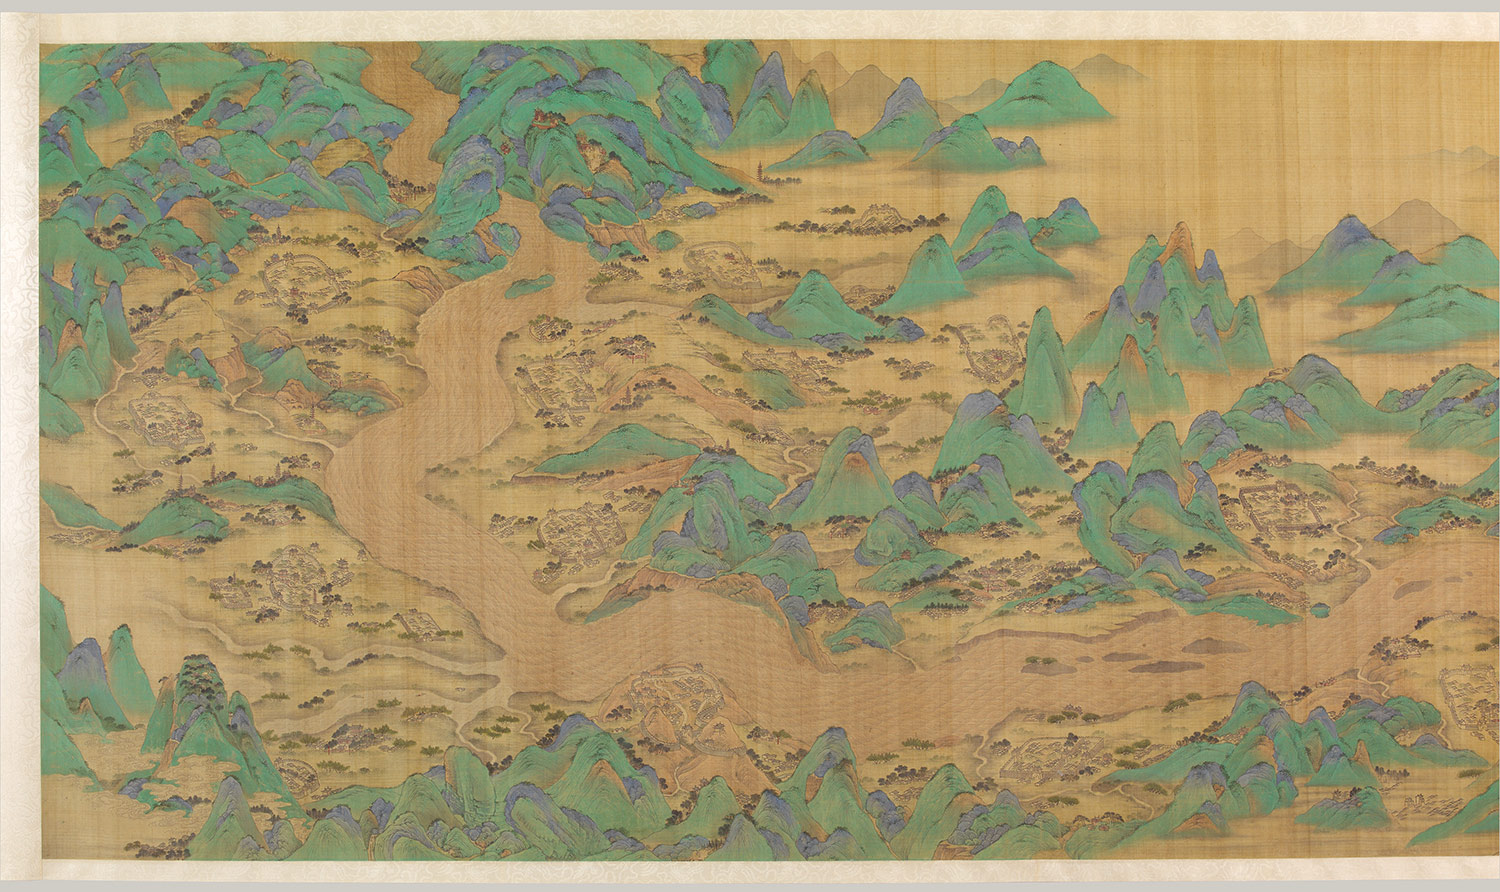 qin in art essay The qin dynasty was established in 221 bc and ruled until 205 bc the qin dynasty with the first emperor at the throne replaced the old feudalistic system by a completely new non-hereditary bureaucratic system.